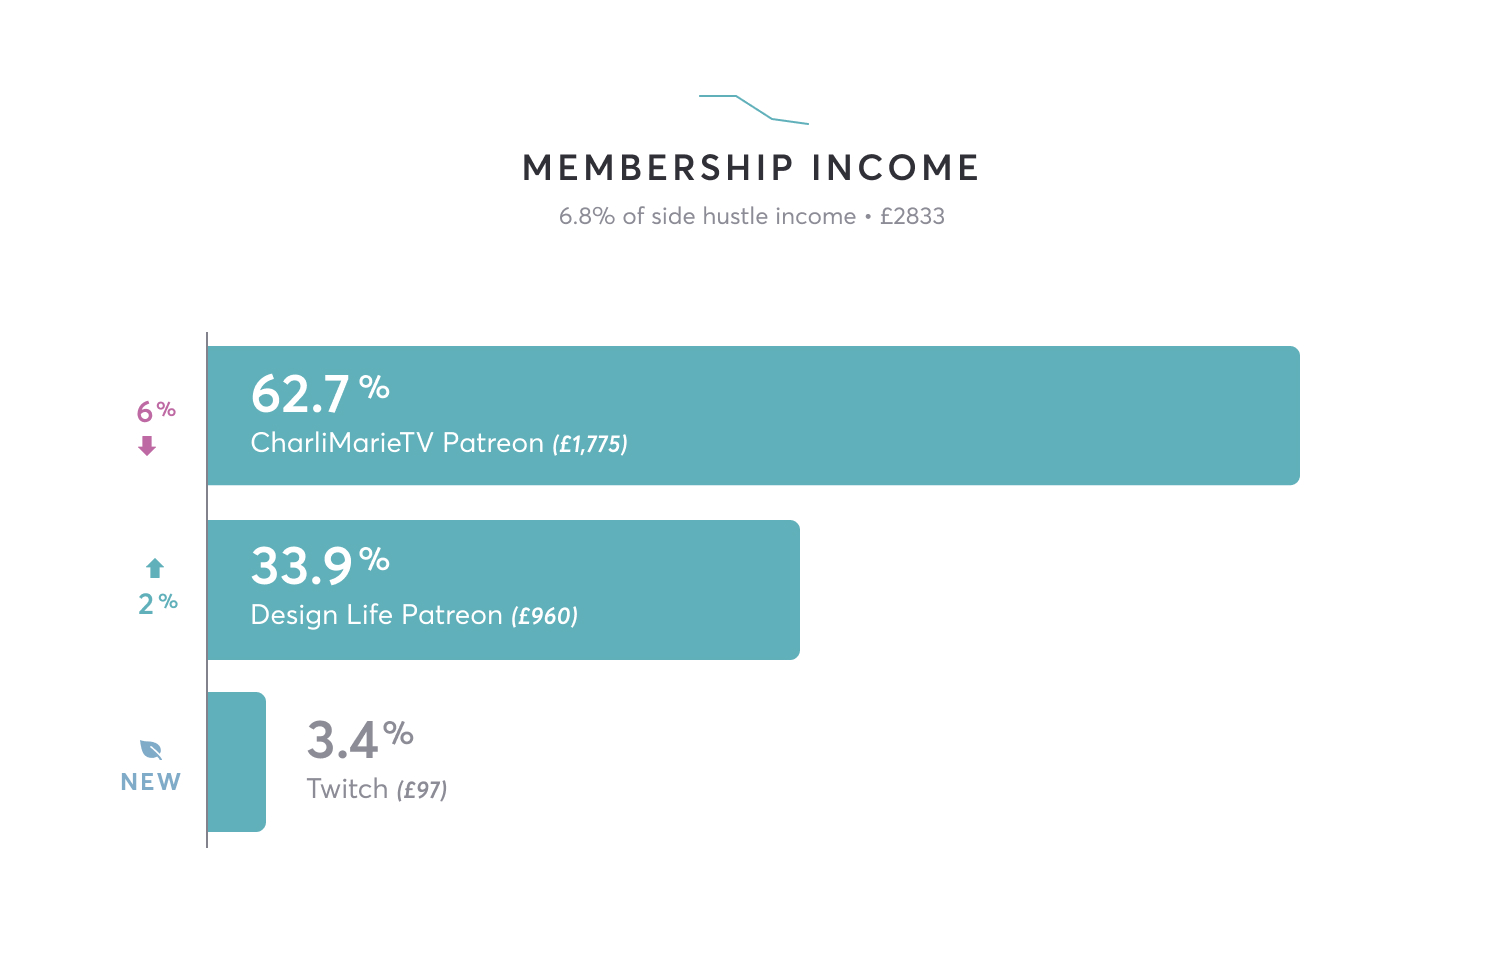 Membership income is £2833. 62.7% (£1775) from Charli Marie TV Patreon, 33.9% (£960) from Design Life Patreon and 3.4 (£97) from Twitch